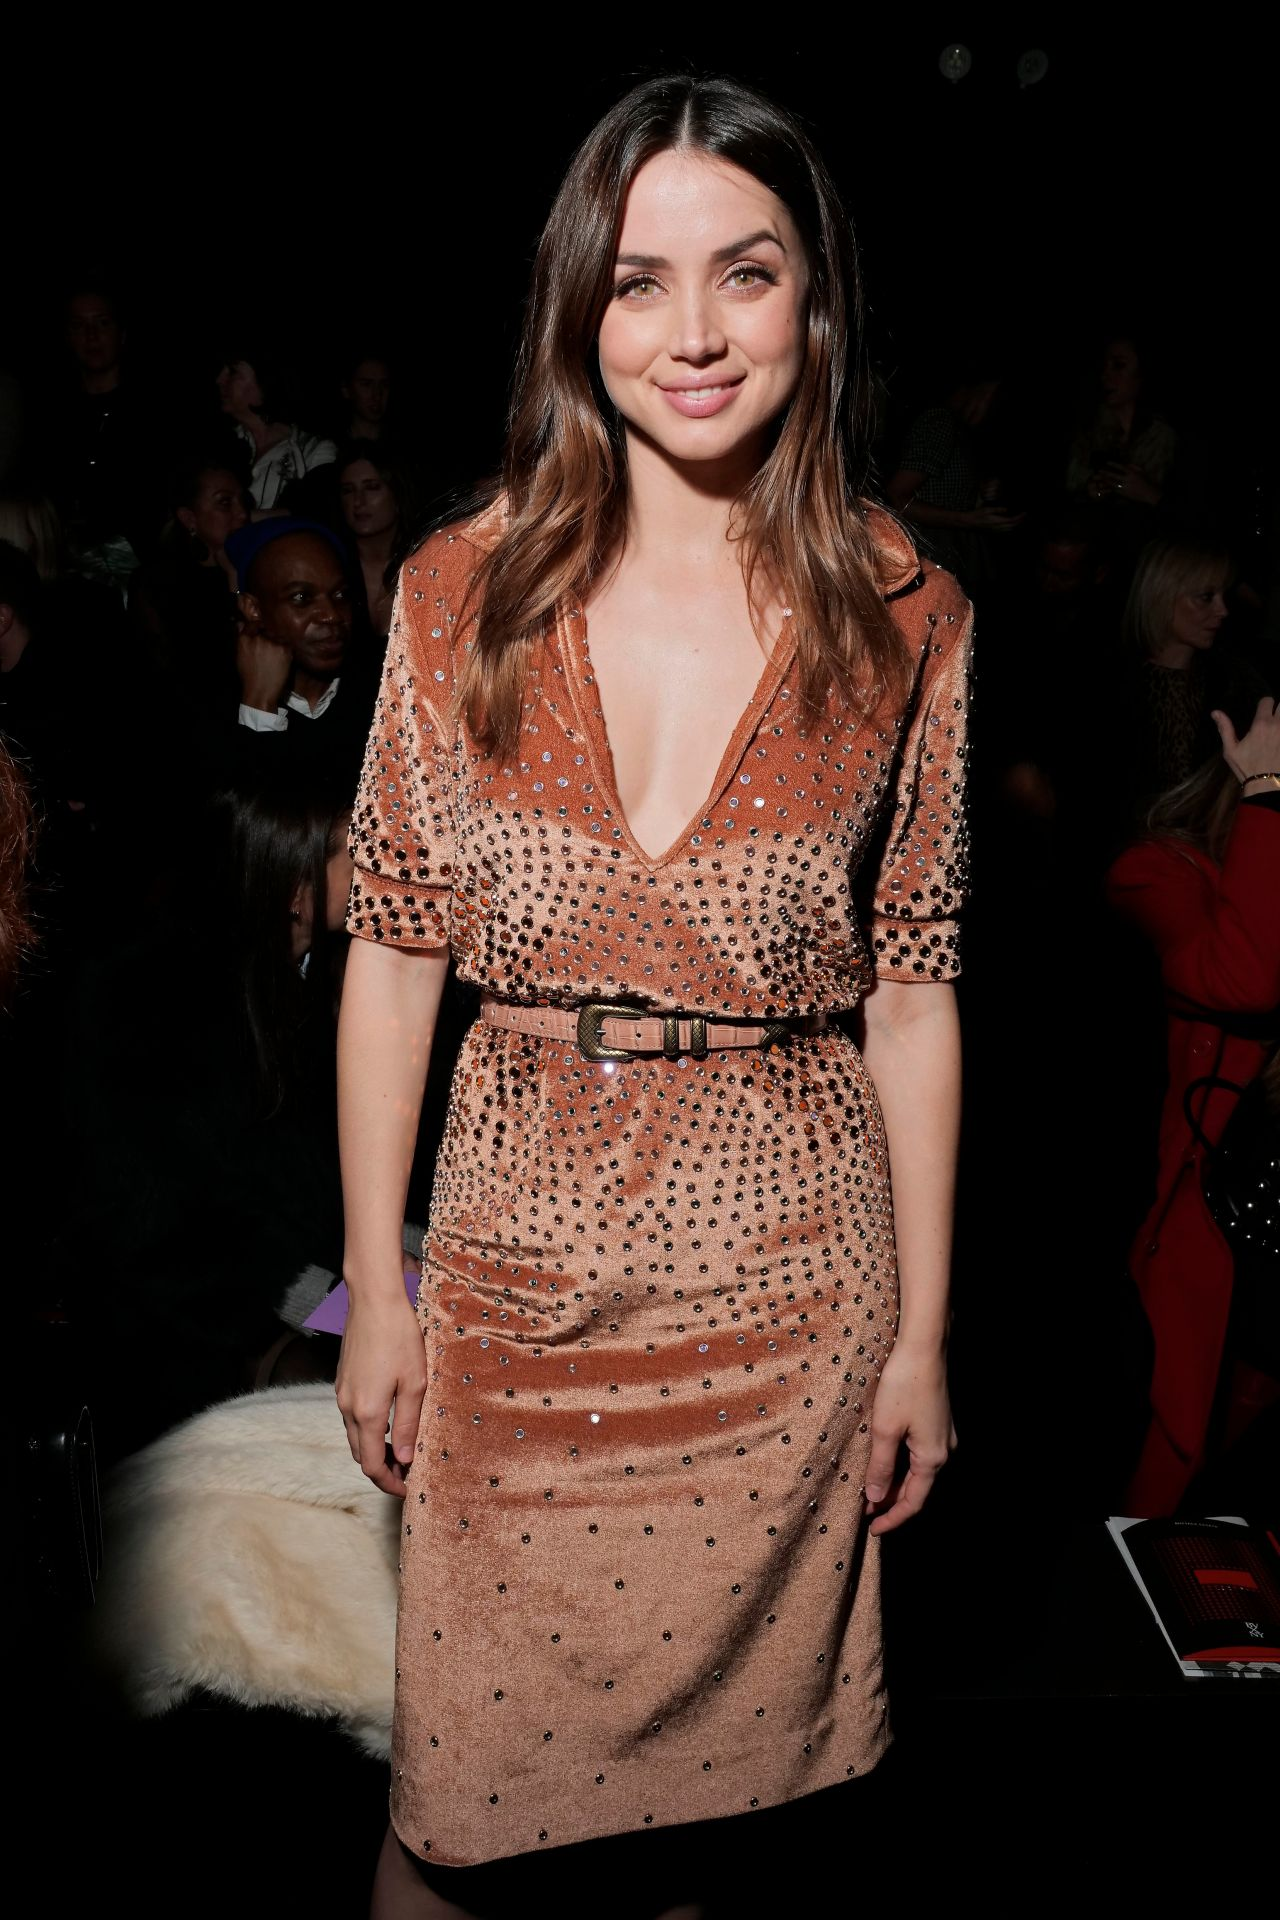 Ana de armas party and lies - 3 9